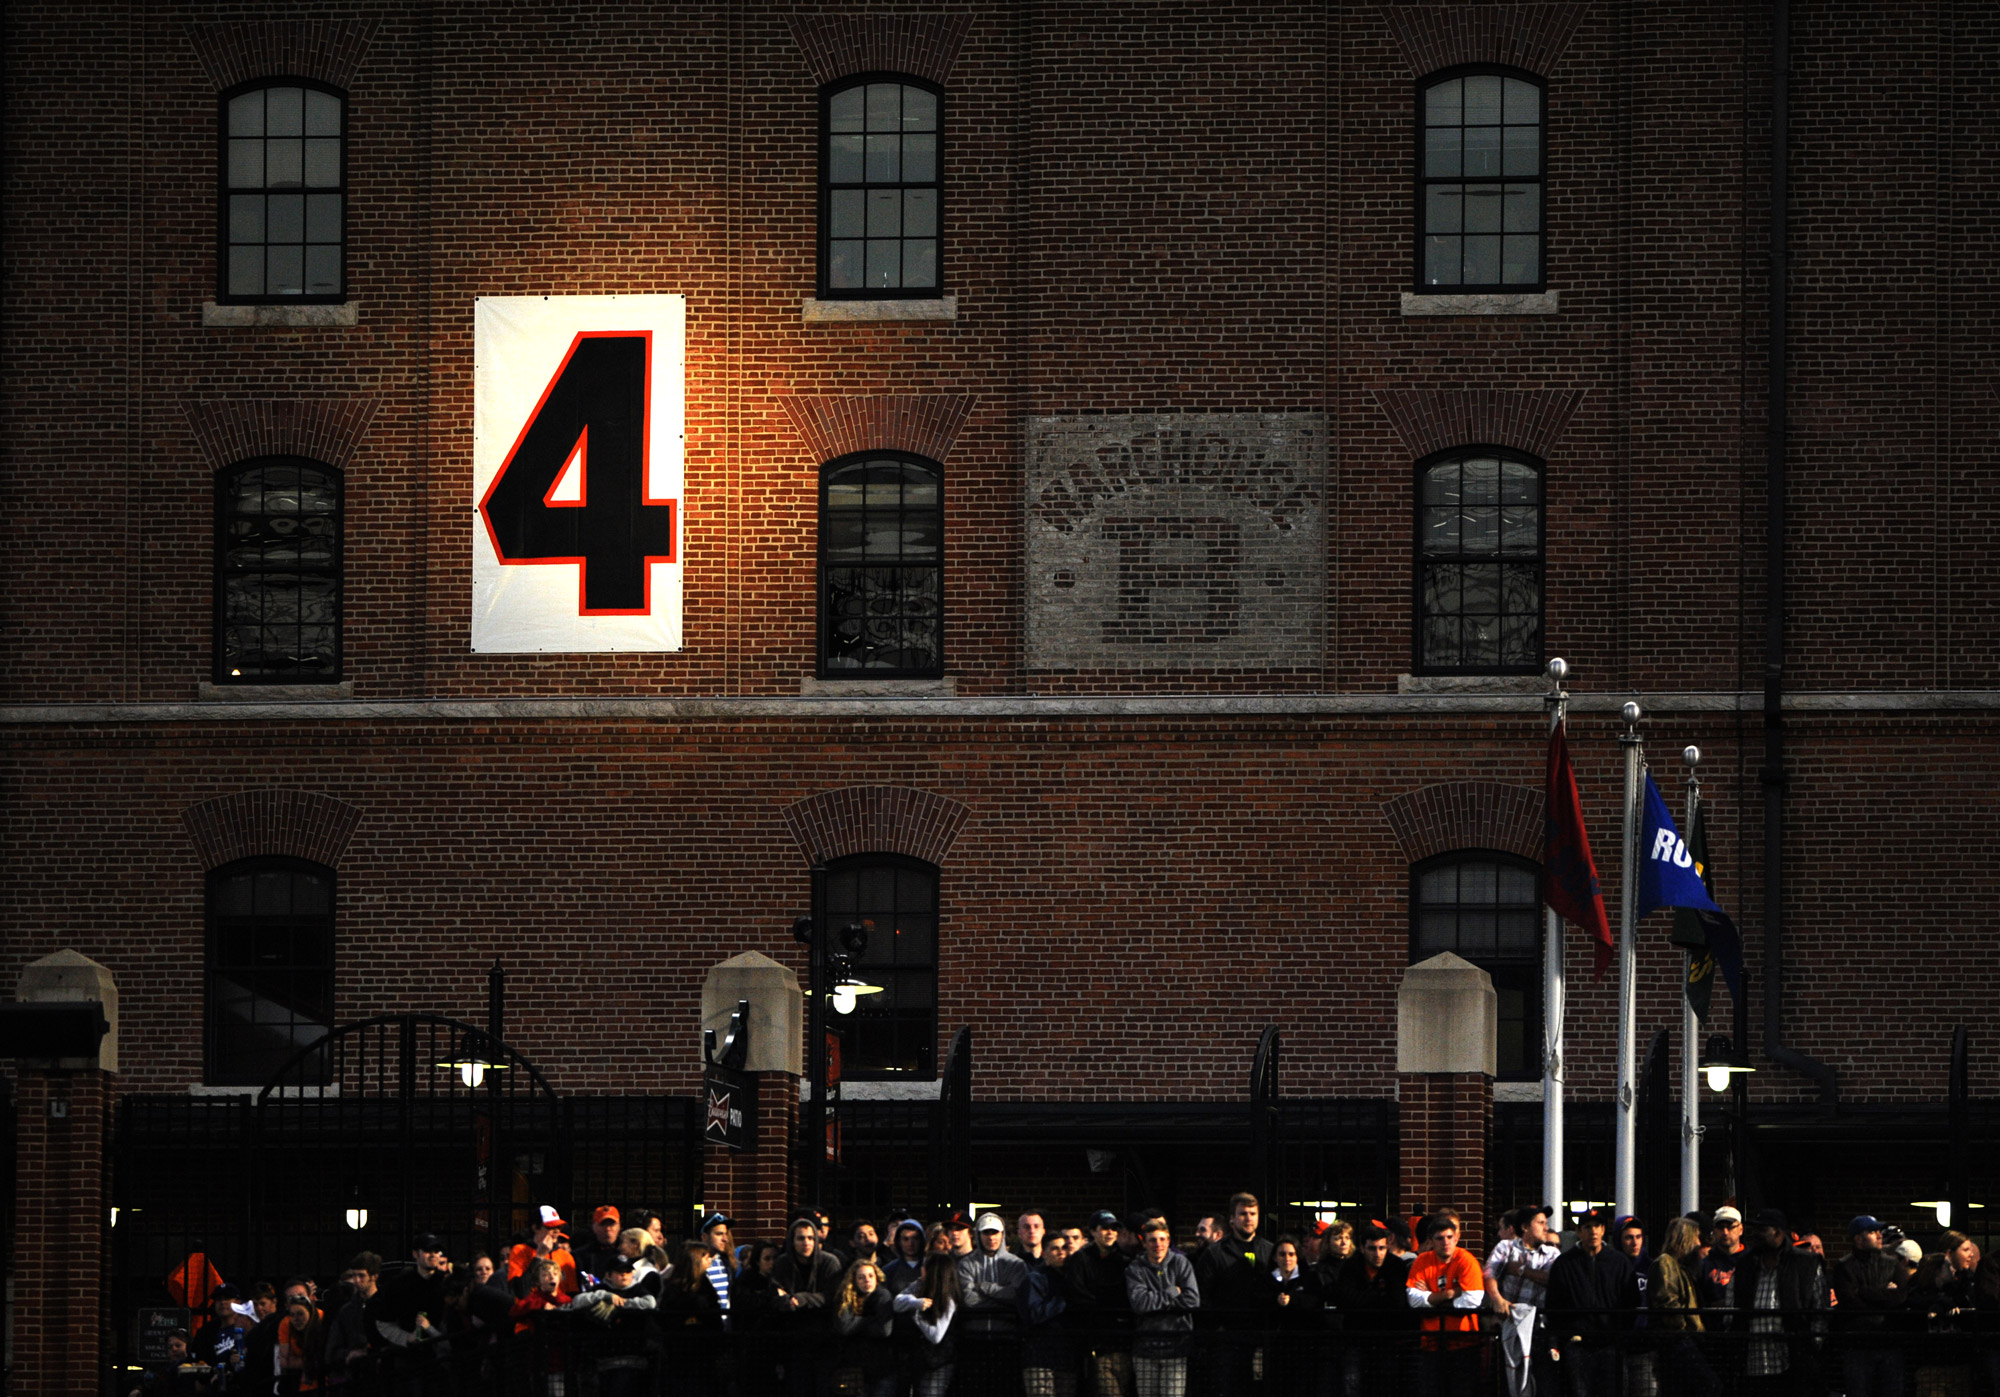 The number four of the late Earl Weaver is displayed on the side of the warehouse at Oriole Park at Camden Yards during a celebration of the coach's life on April 20, 2013 in Baltimore, Md.